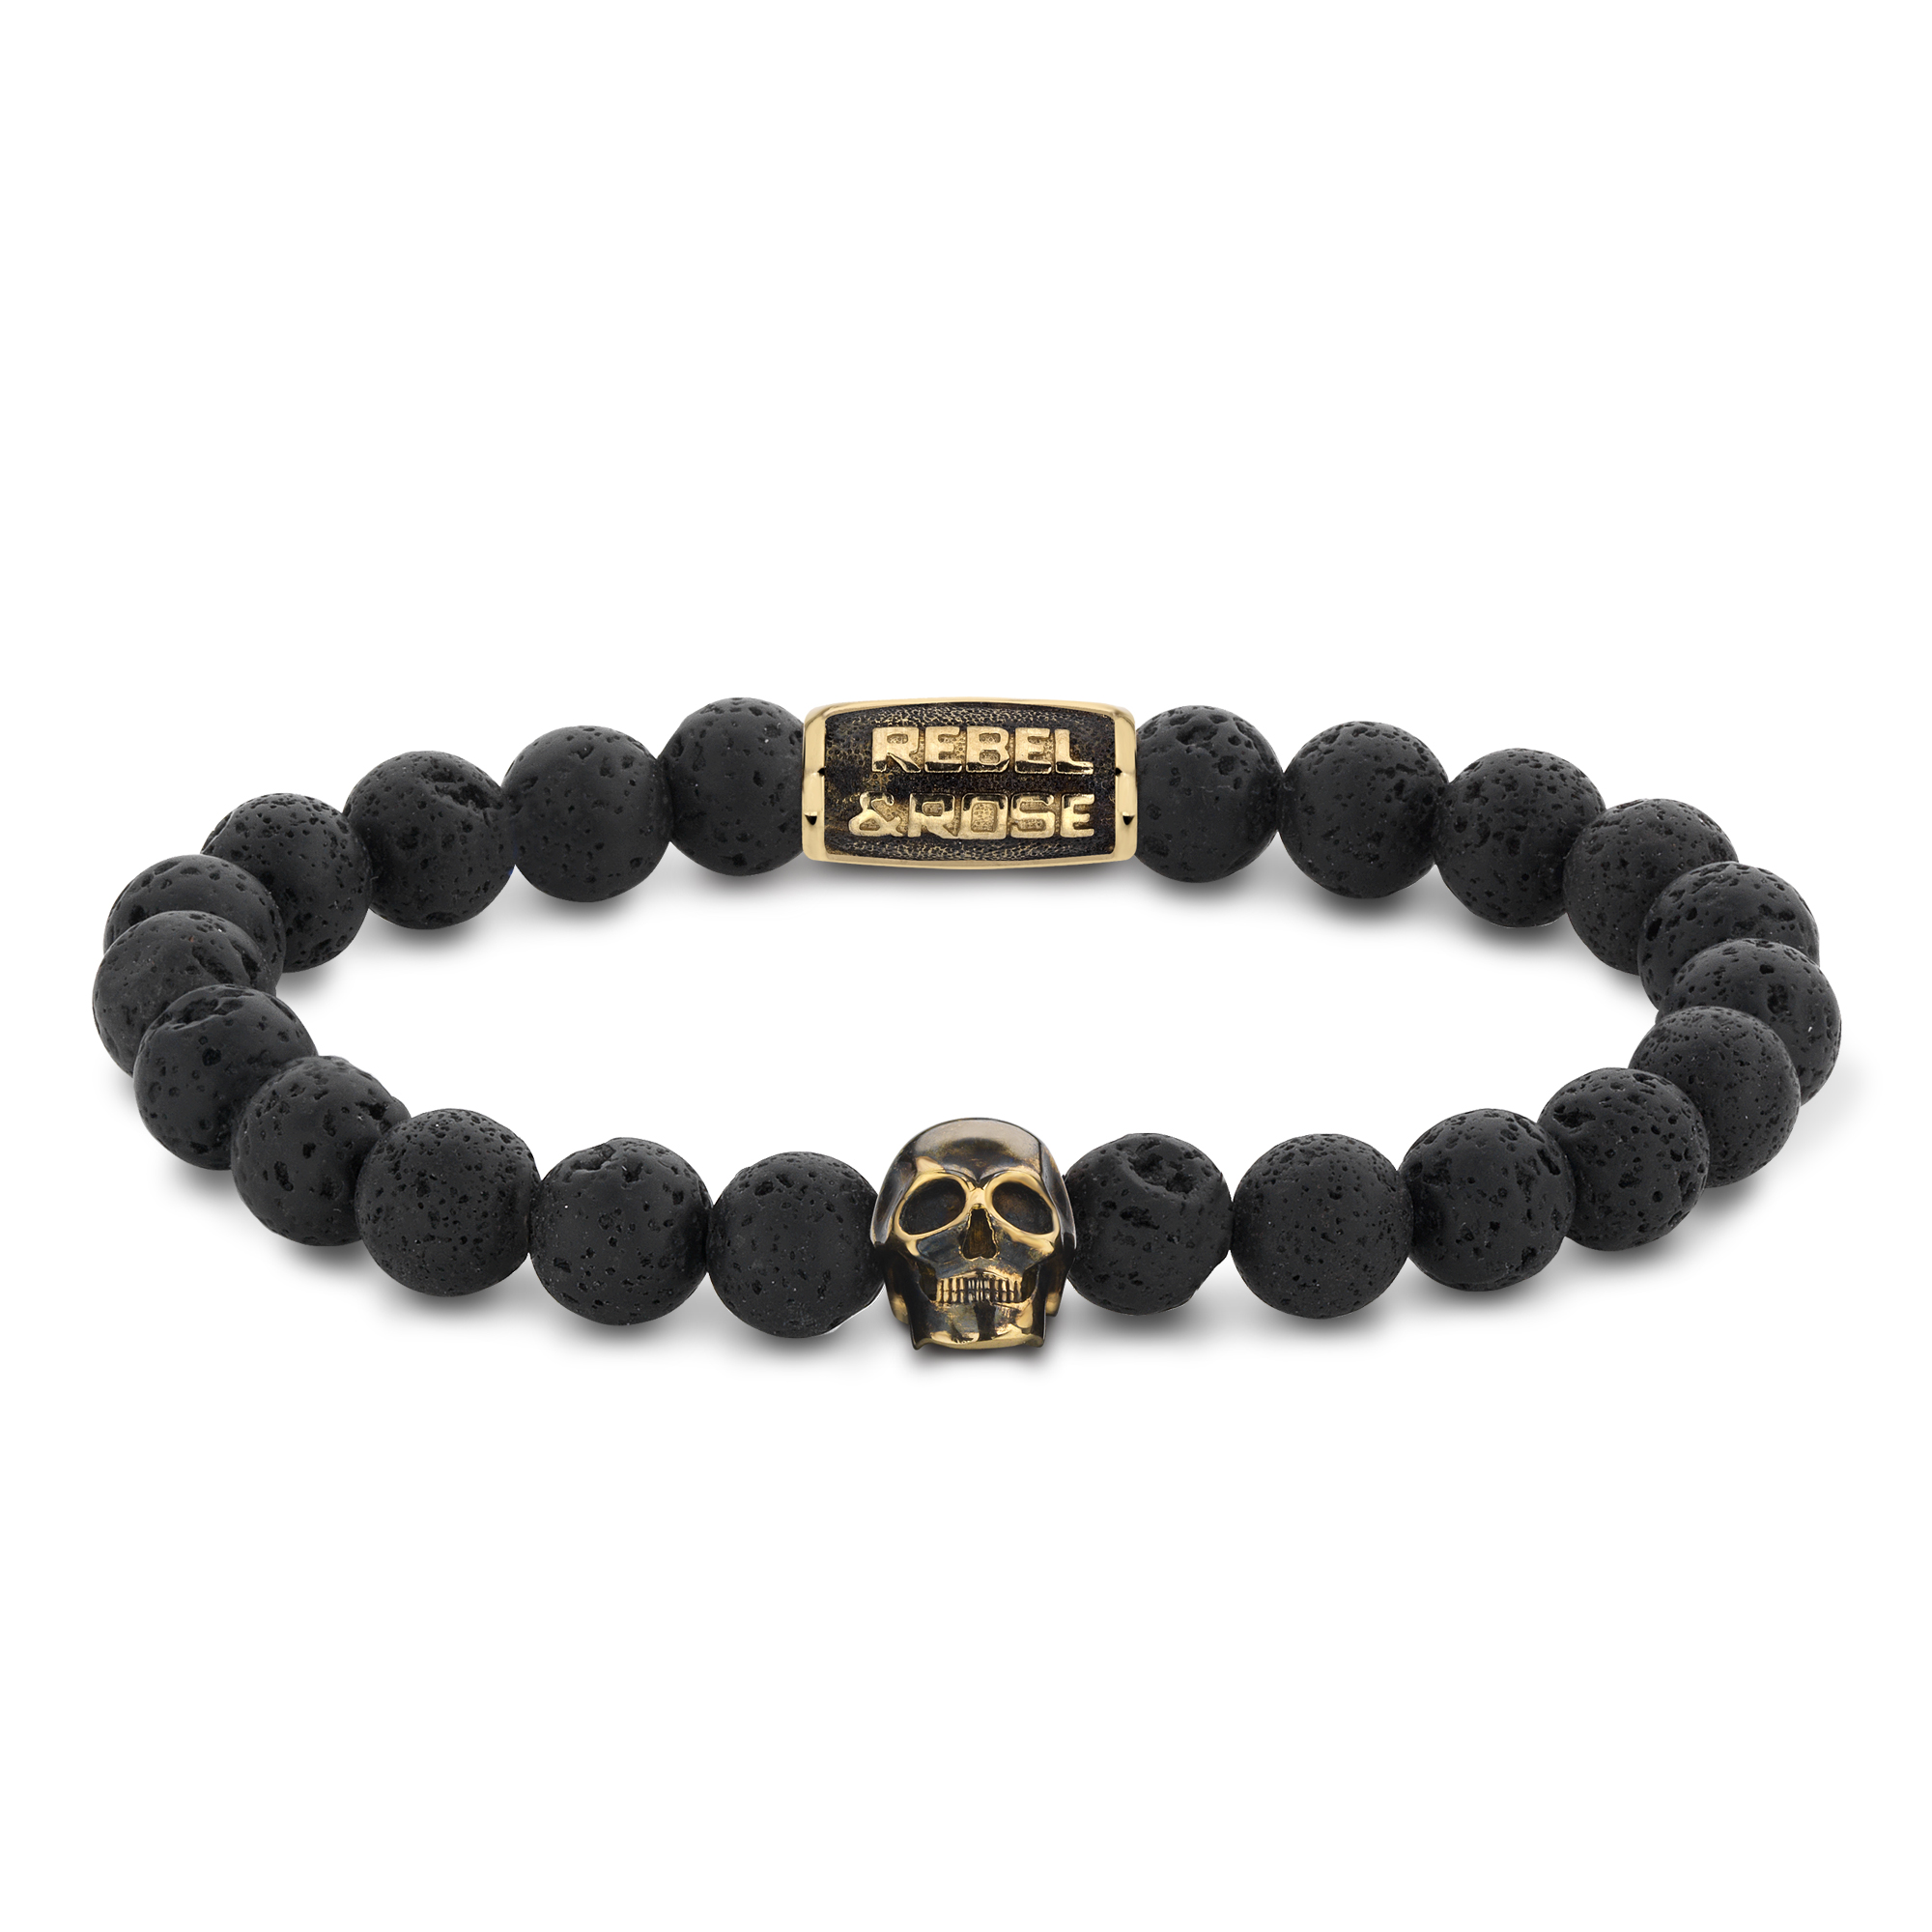 Rebel and Rose RR-SK002-G-L Armband Skull Black Moon yellow gold plated L 8mm 19.0